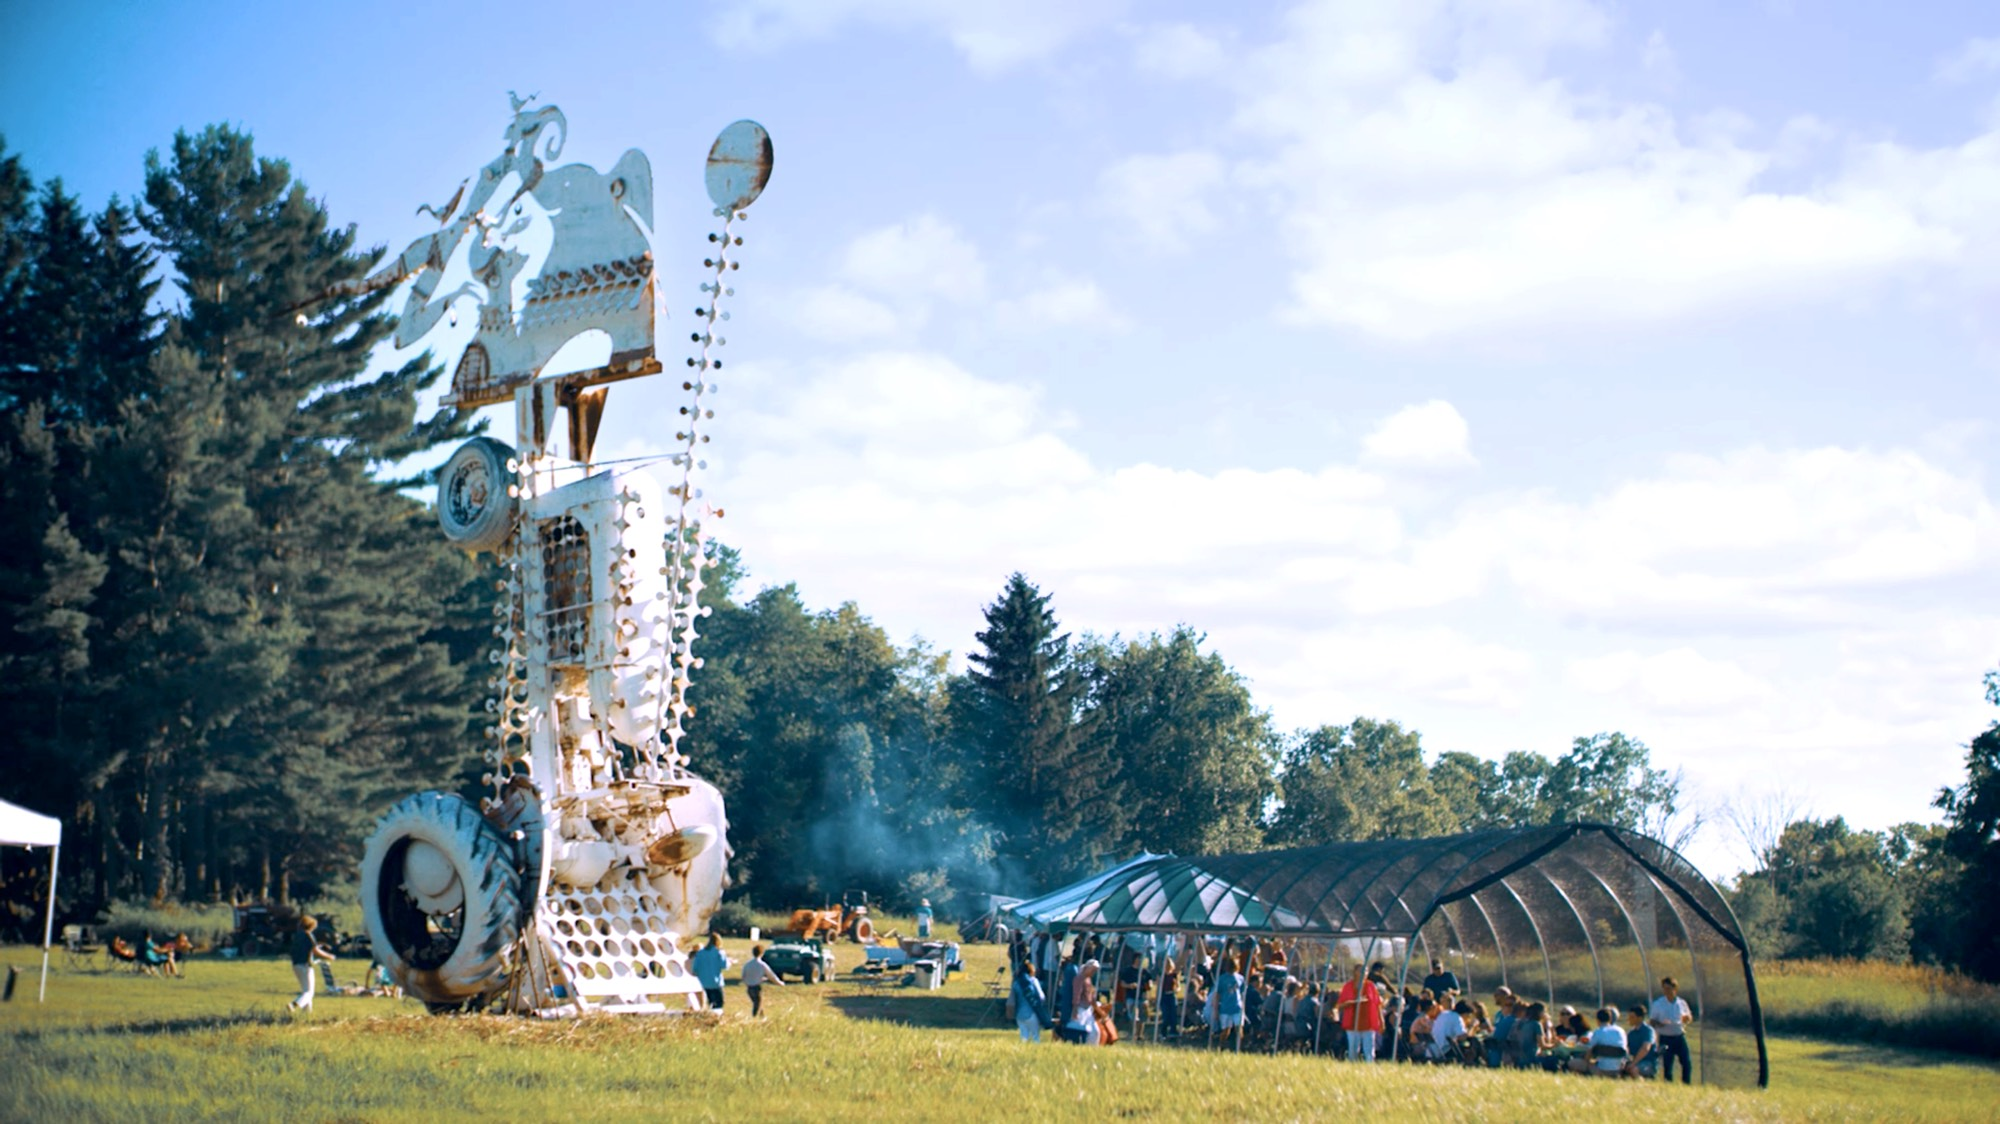 A white sculpture made out of tractor parts towers next to a tent in which festivalgoers are eating dinner.